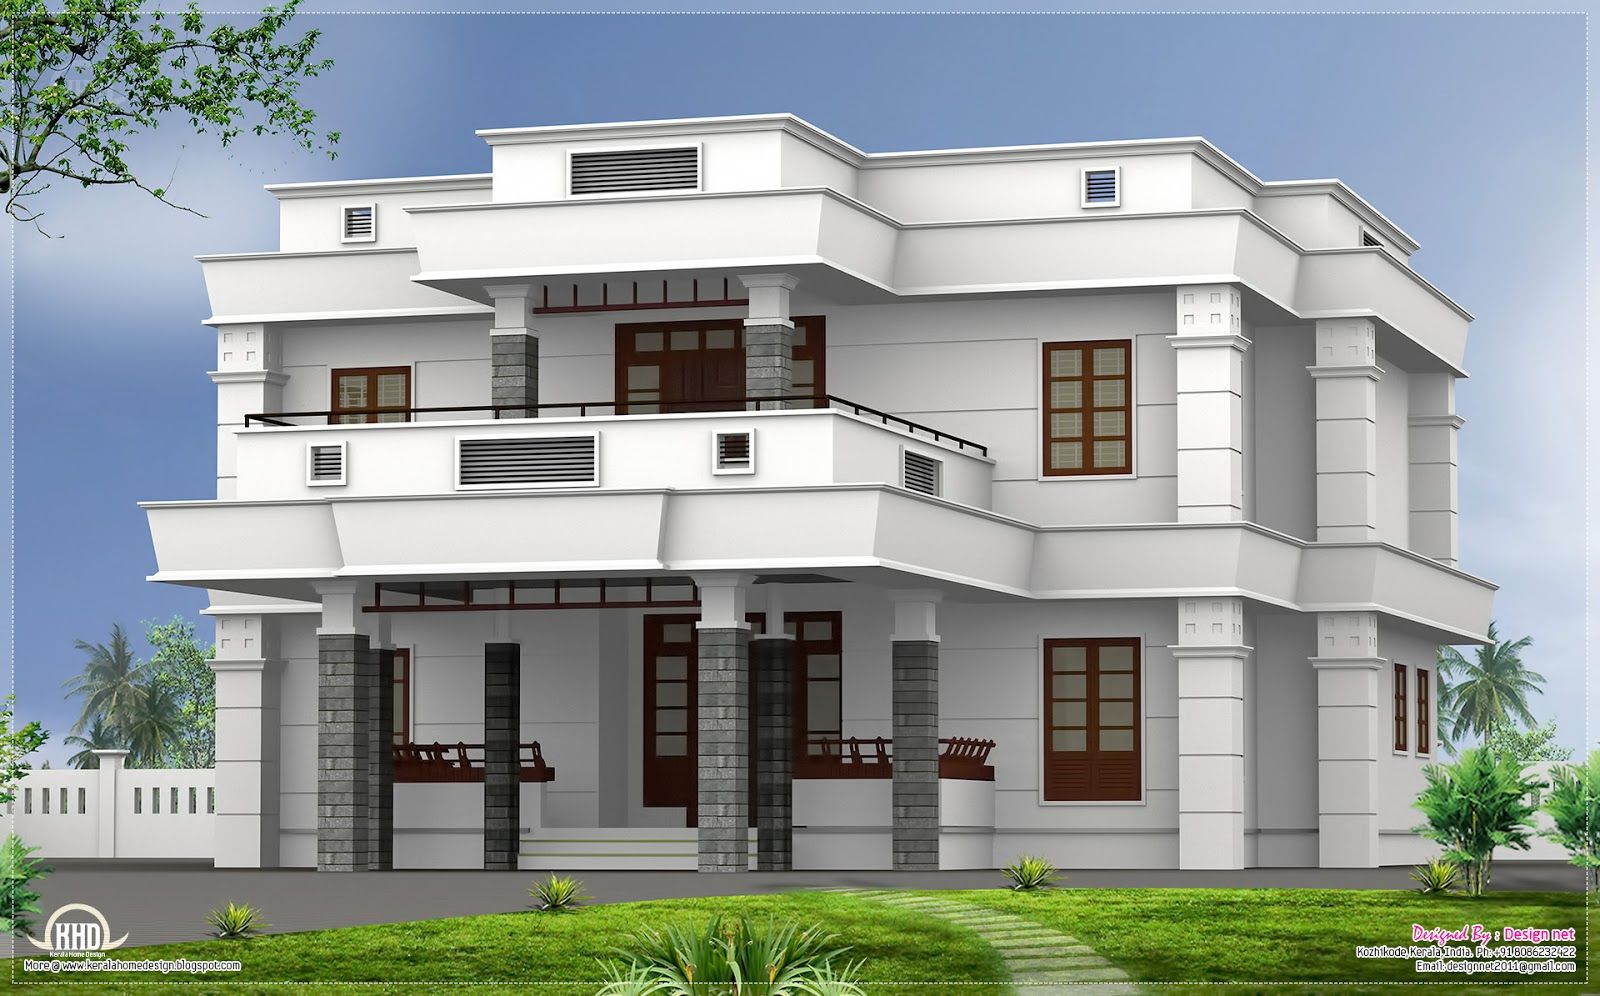 Flat roof homes designs bhk modern flat roof house for Home design exterior ideas in india